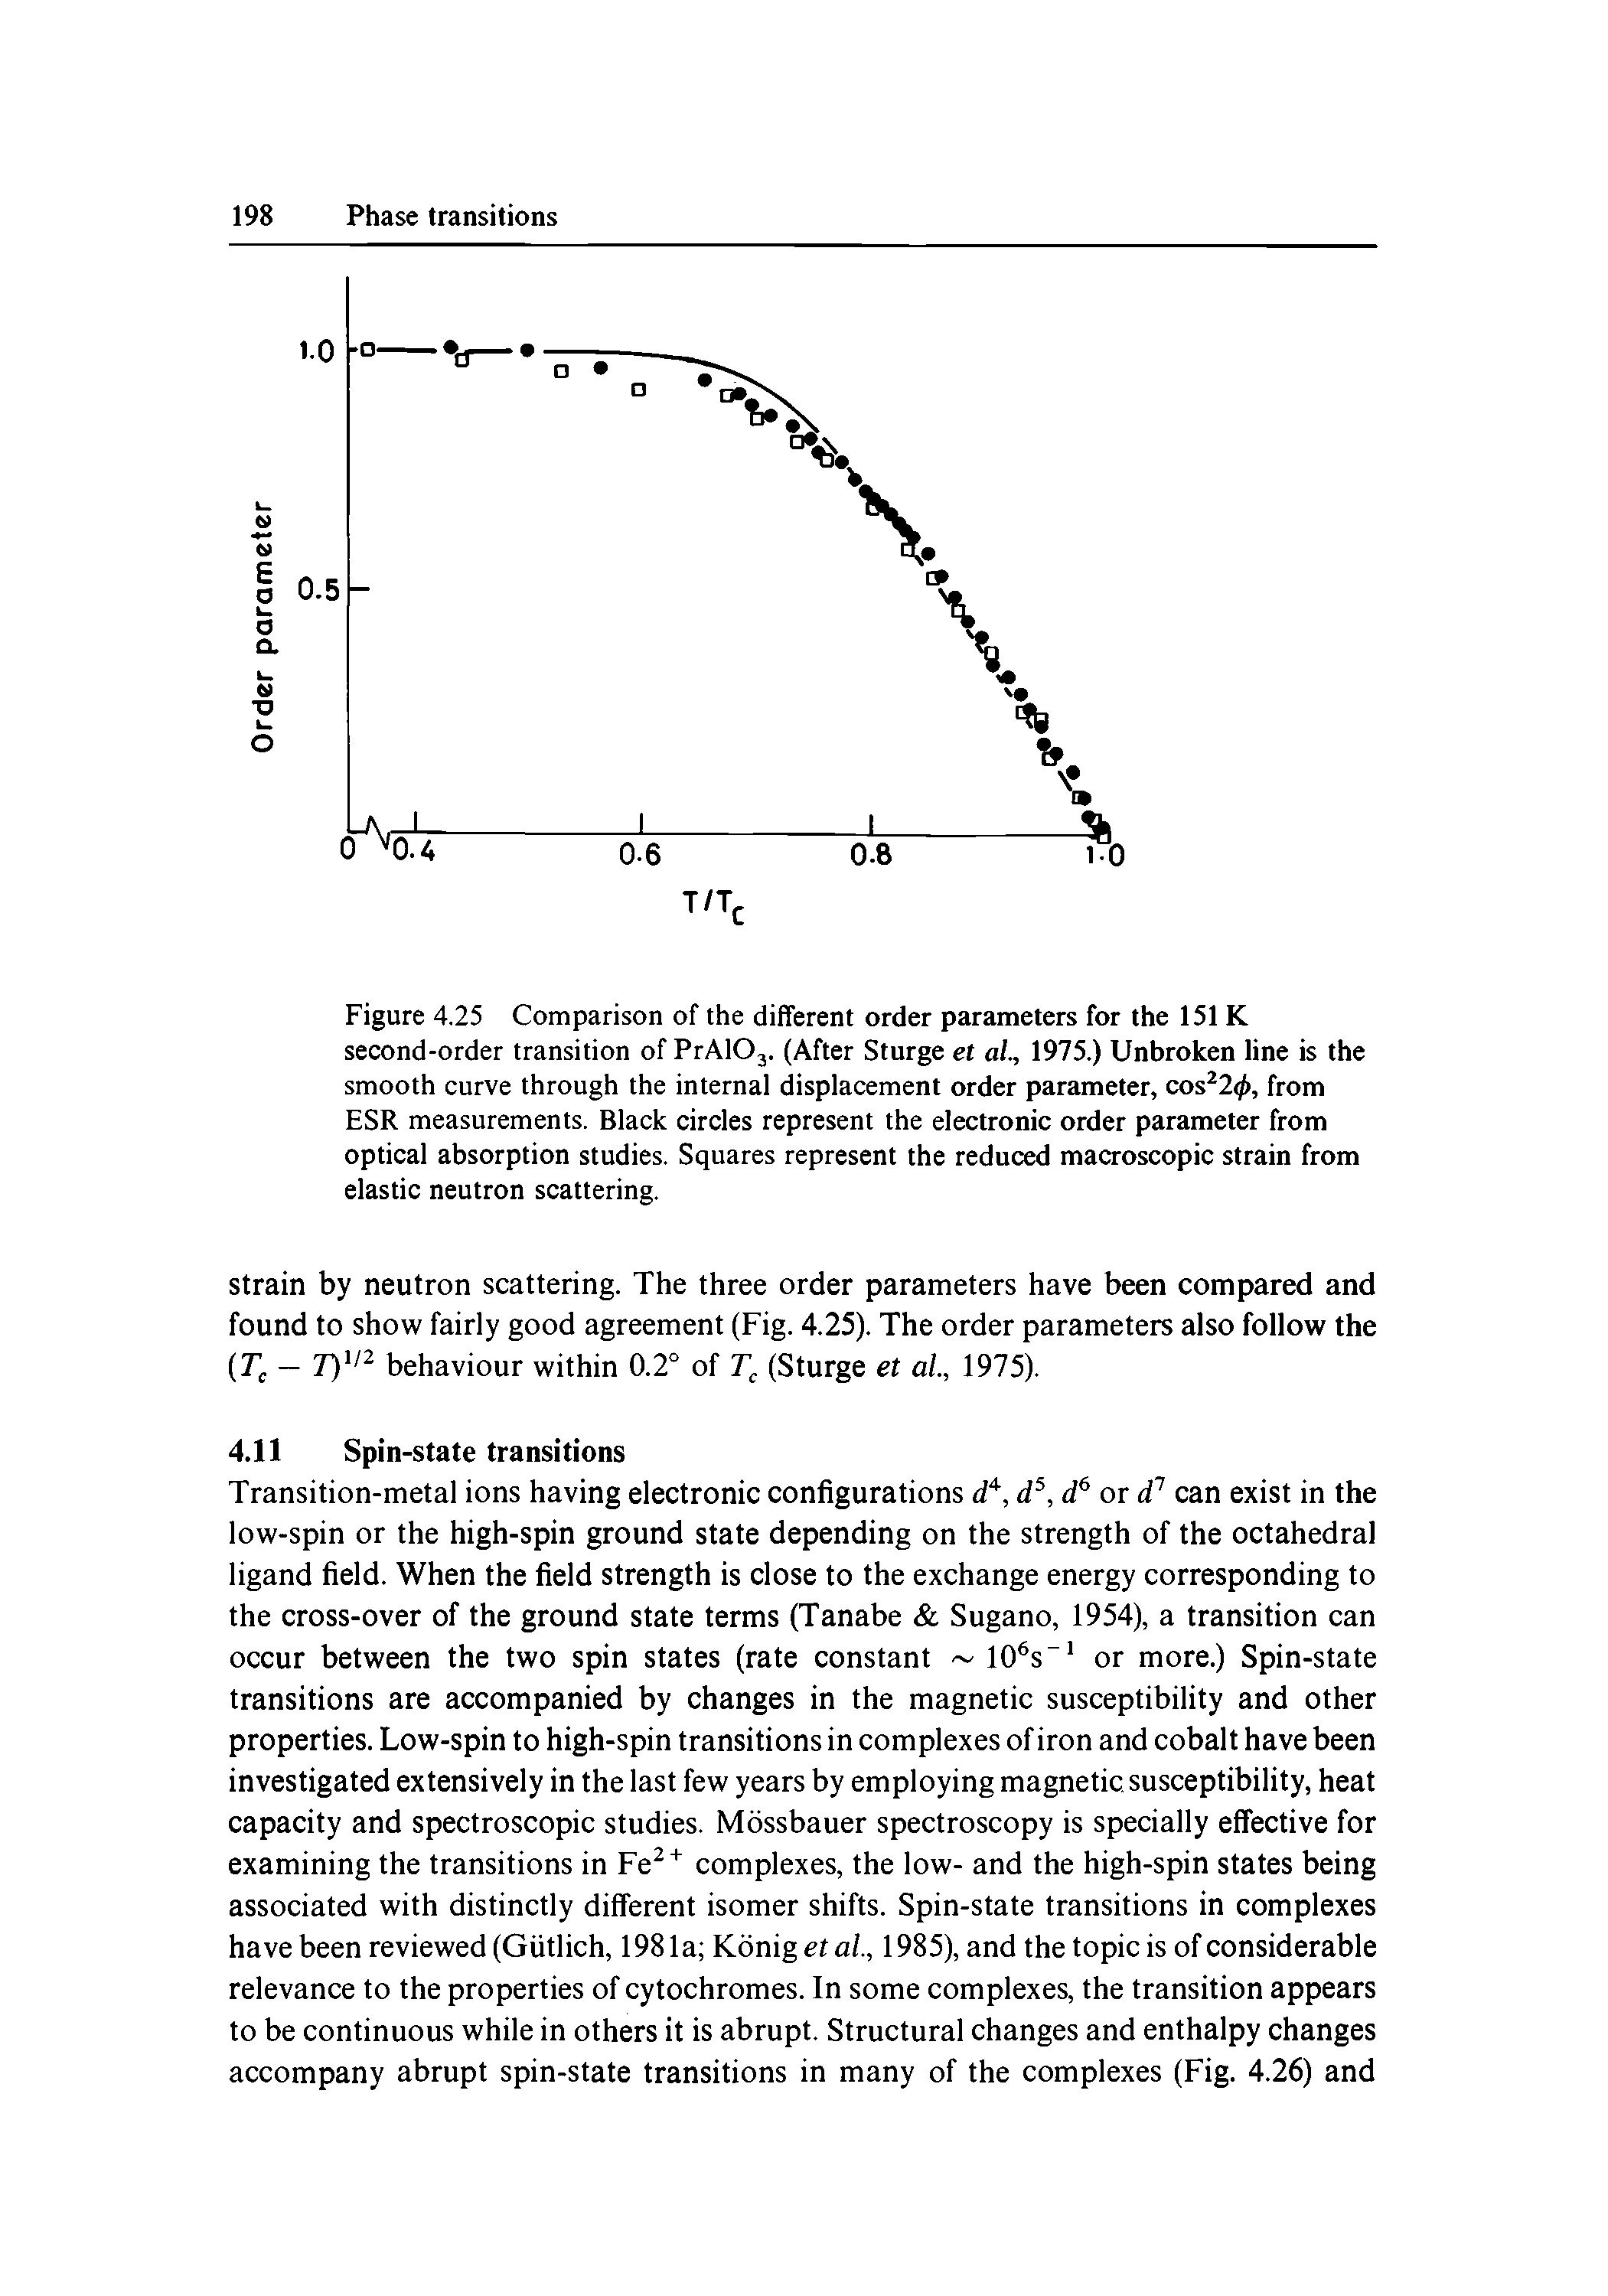 "Figure 4.25 Comparison of the <a href=""/info/differences_orders"">different order</a> parameters for the 151 K <a href=""/info/second_order_transition"">second-order transition</a> of PrAlOj. (After Sturge et al., 1975.) Unbroken line is the <a href=""/info/smooth_curve"">smooth curve</a> through the <a href=""/info/displacement_internal"">internal displacement</a> <a href=""/info/order_parameters"">order parameter</a>, cos 2(, from ESR measurements. <a href=""/info/black_circles"">Black circles</a> represent the electronic <a href=""/info/order_parameters"">order parameter</a> from <a href=""/info/optical_absorption"">optical absorption</a> studies. Squares represent the reduced macroscopic strain from <a href=""/info/neutron_elastic"">elastic neutron</a> scattering."